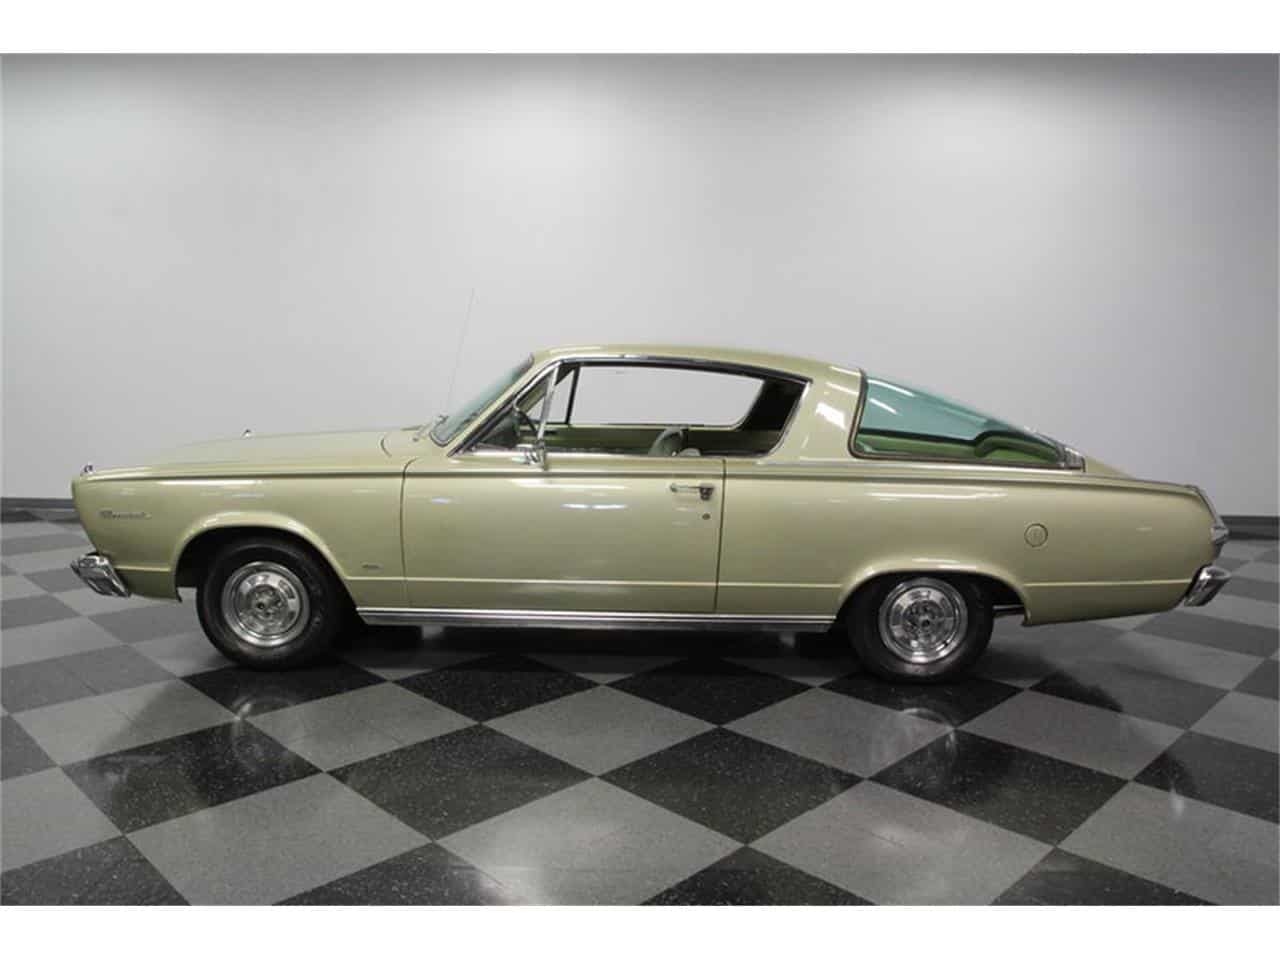 1966 Plymouth Barracuda - Muscle Car Facts